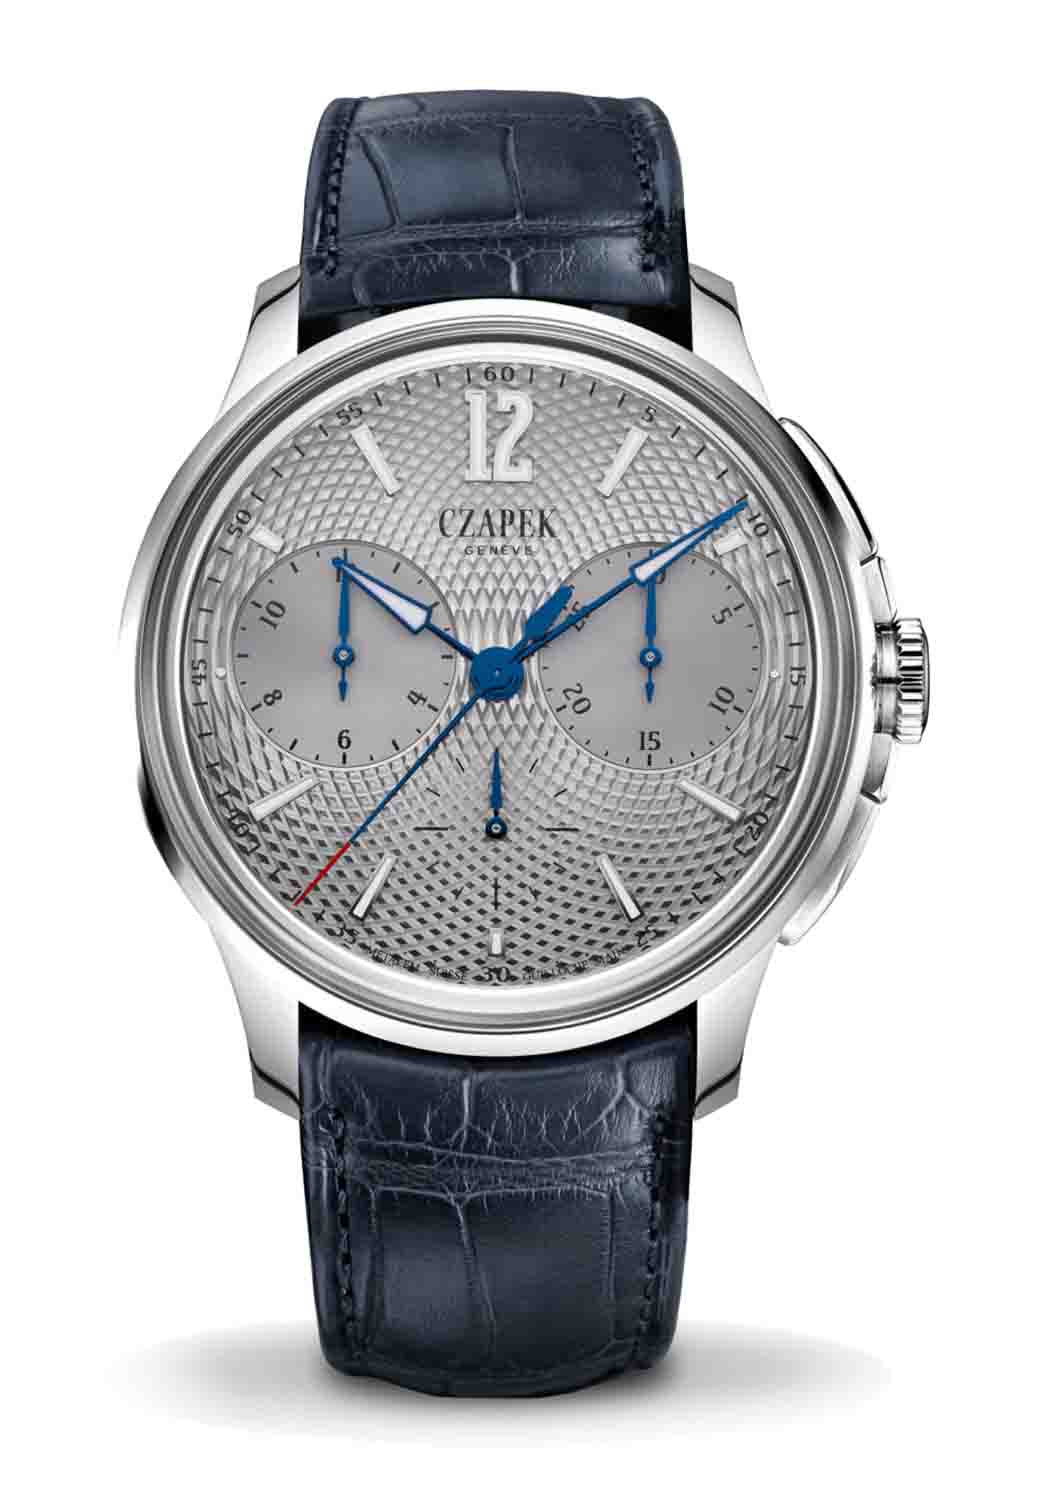 Czapek & Cie Faubourg de Cracovie Secret Alloy | LE18